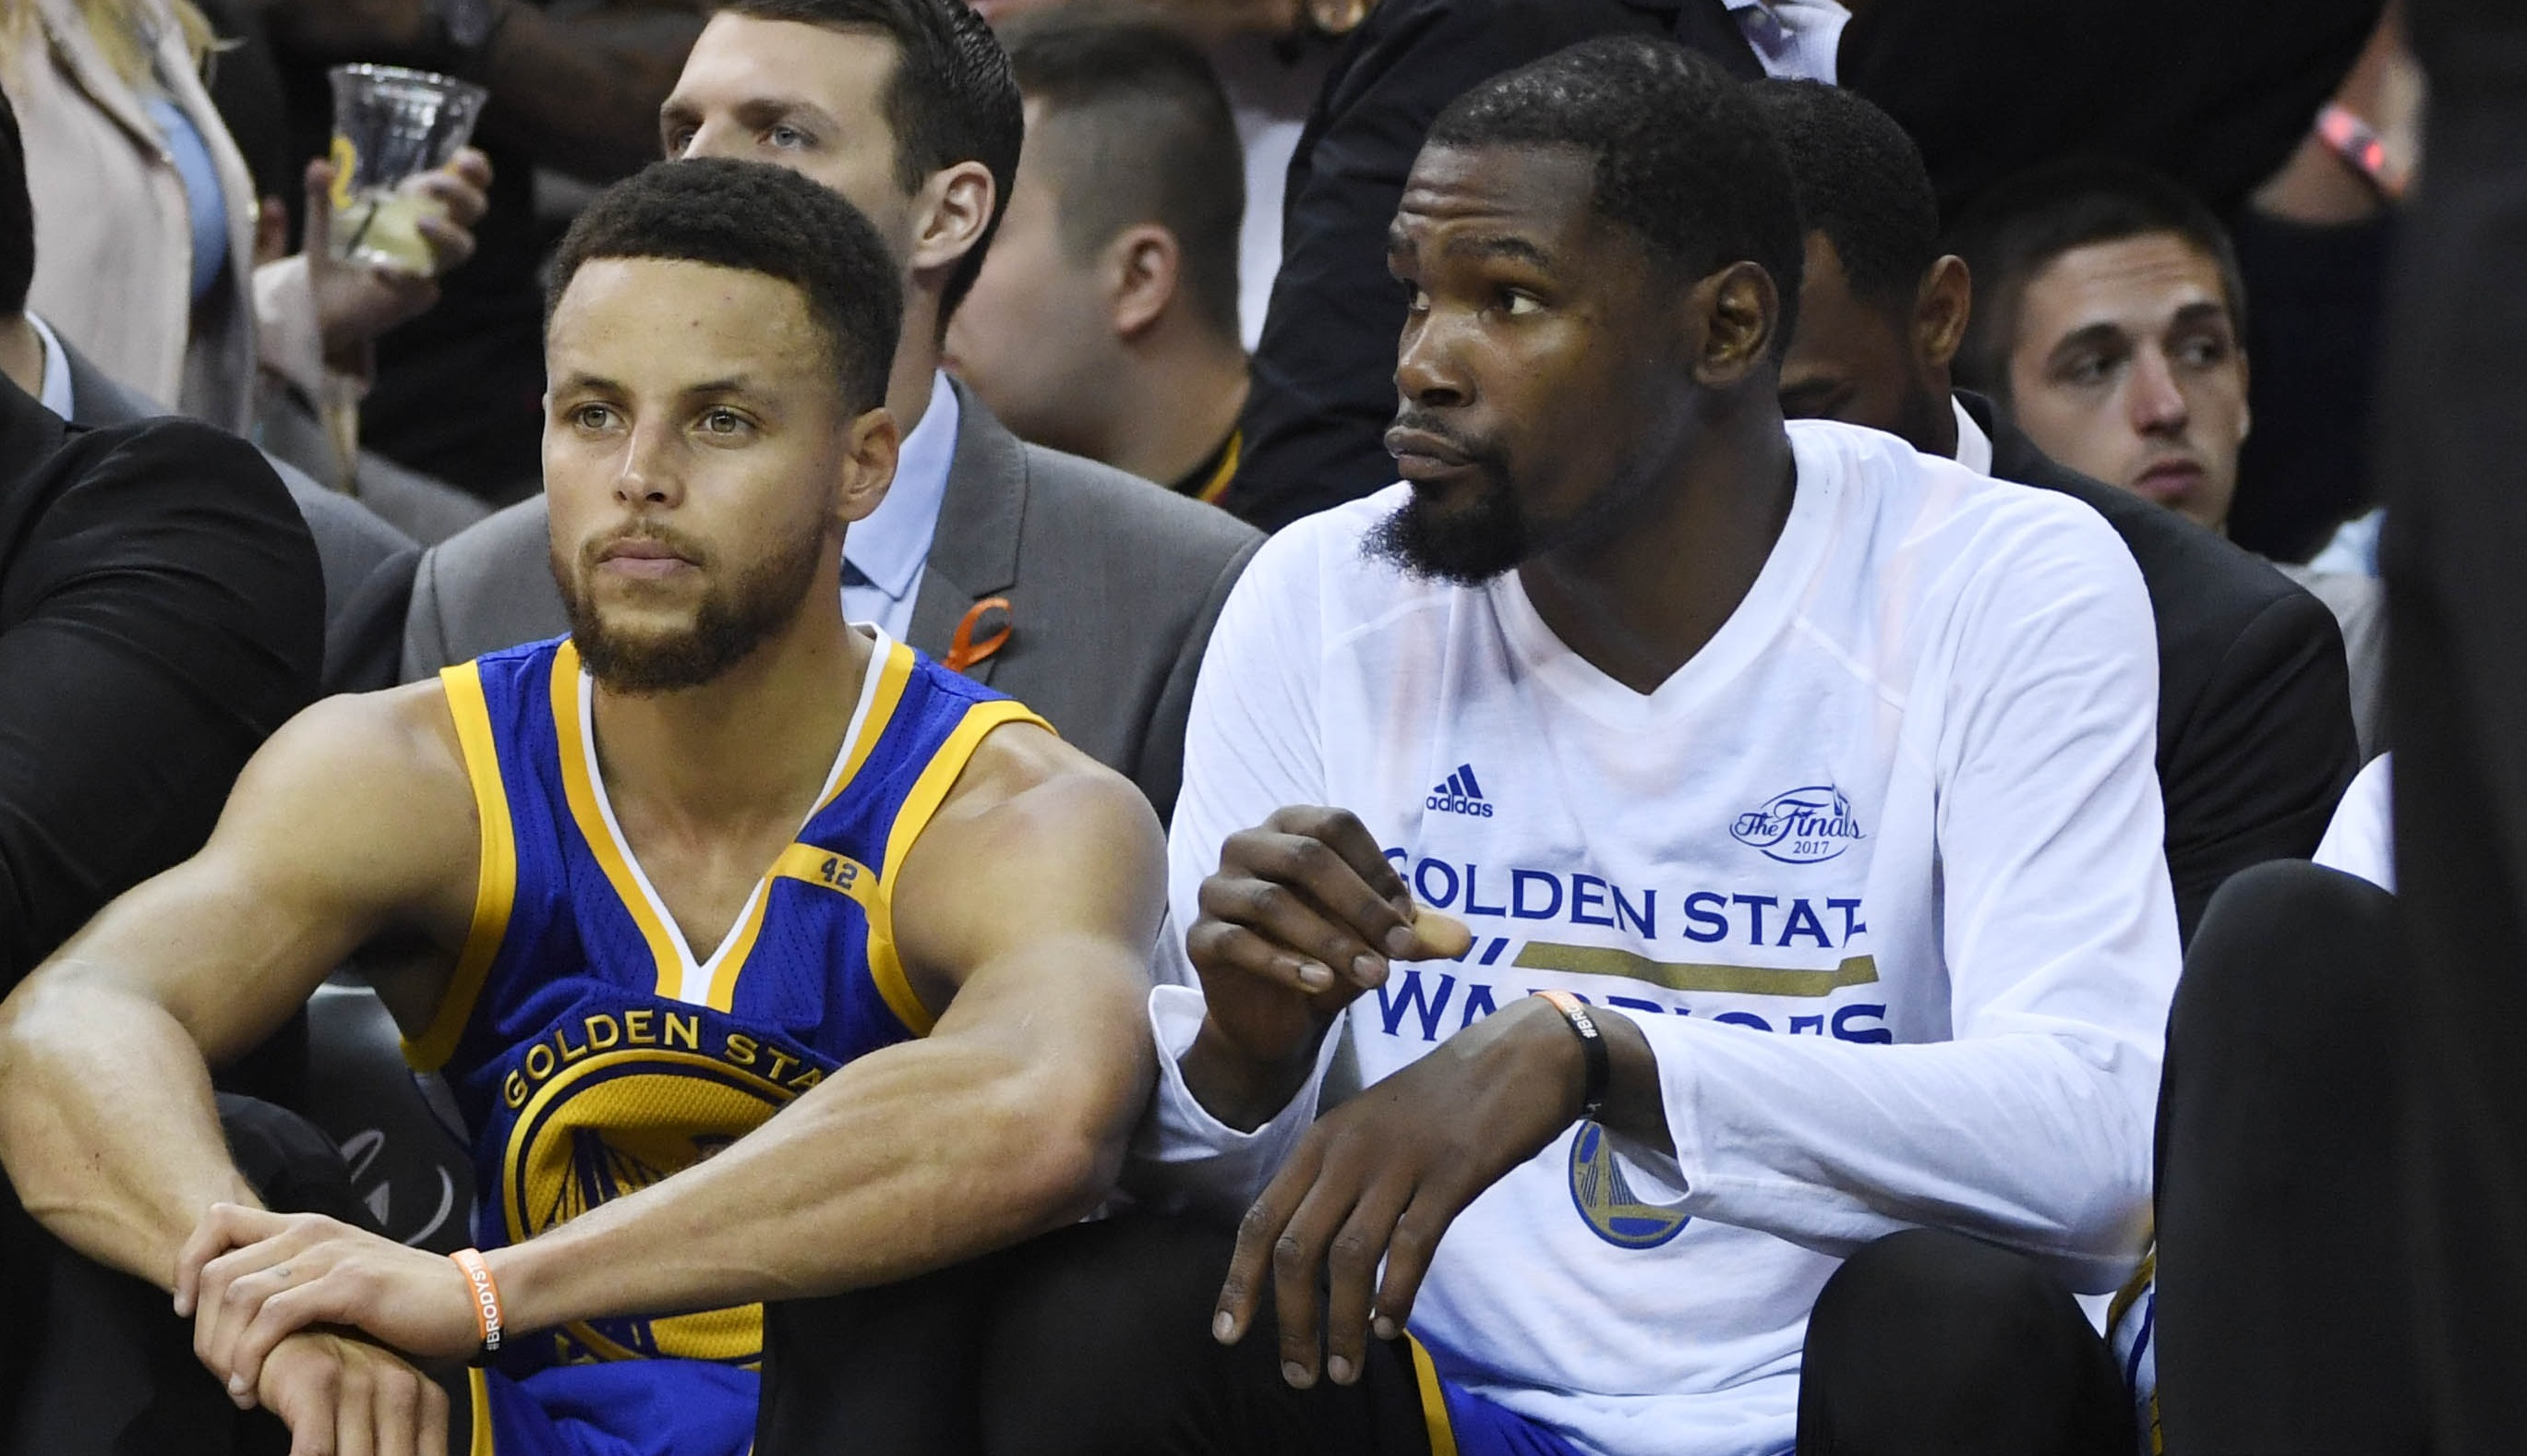 Jun 9, 2017; Cleveland, OH, USA; Golden State Warriors guard Stephen Curry (30) and forward Kevin Durant (right) on the bench against the Cleveland Cavaliers during the first half in game four of the 2017 NBA Finals at Quicken Loans Arena. Mandatory Credit: Kyle Terada-USA TODAY Sports